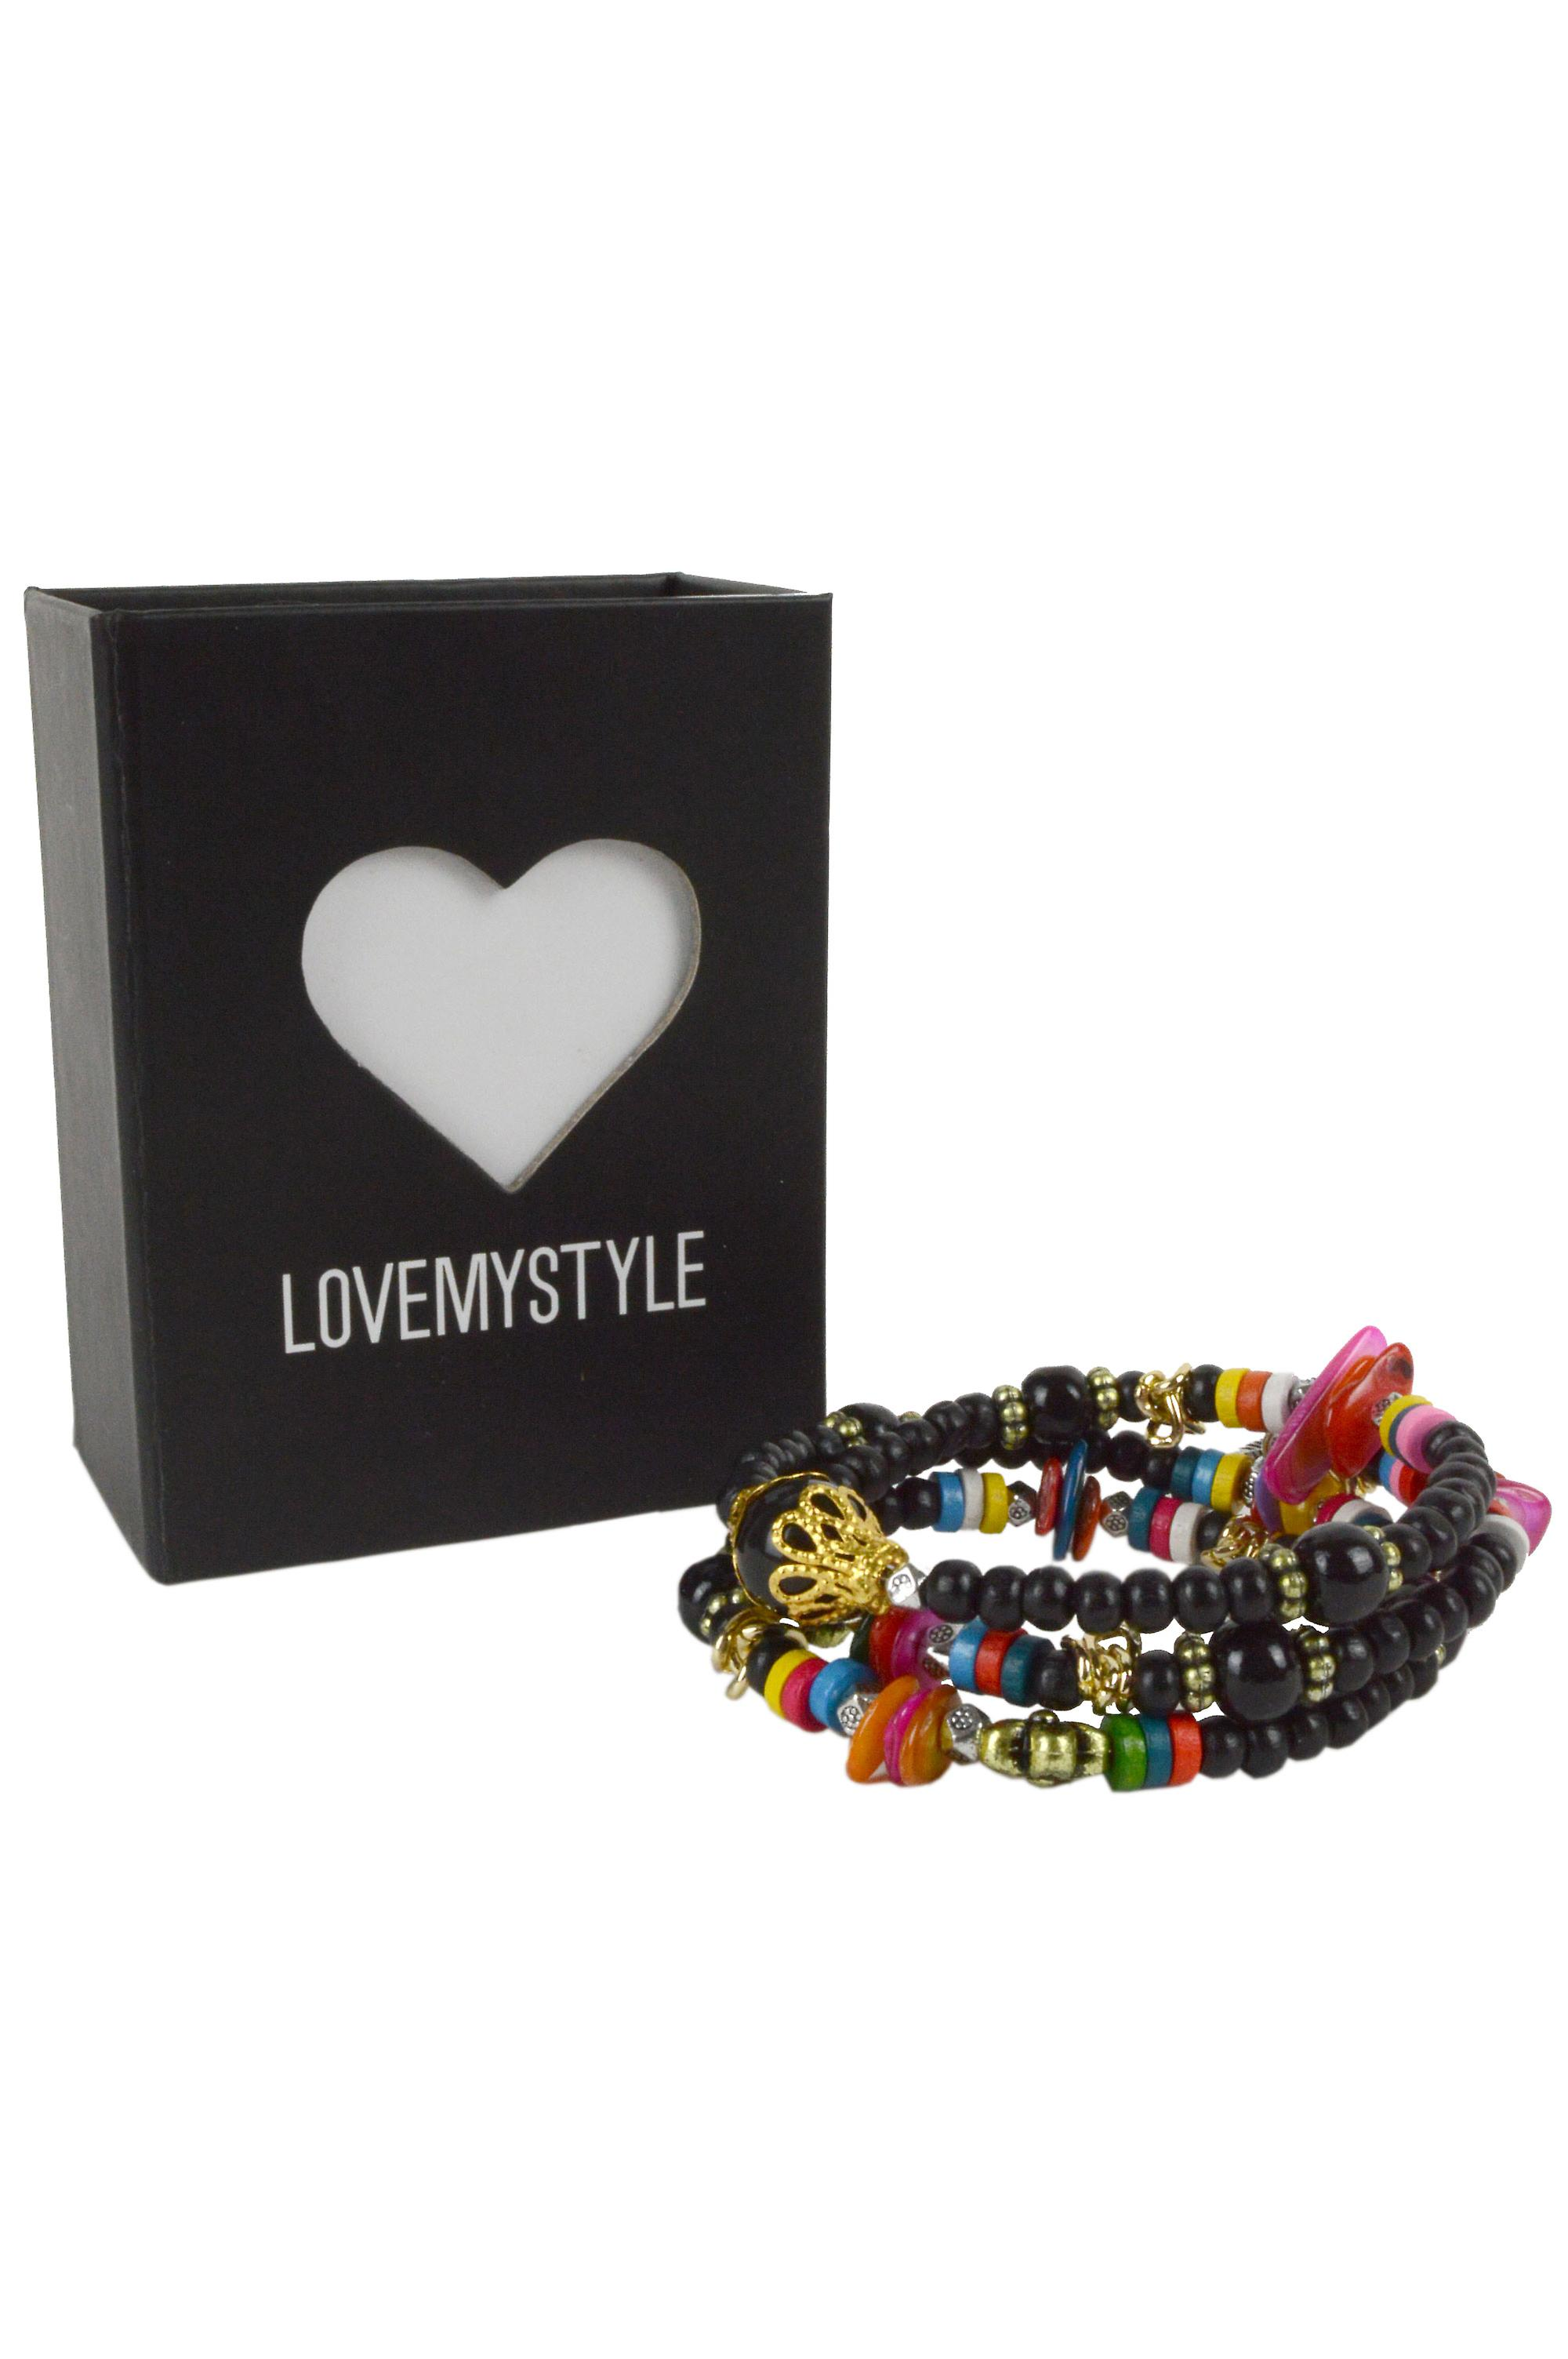 LMS Colourful Friendship Bracelet With Charms And Beads.